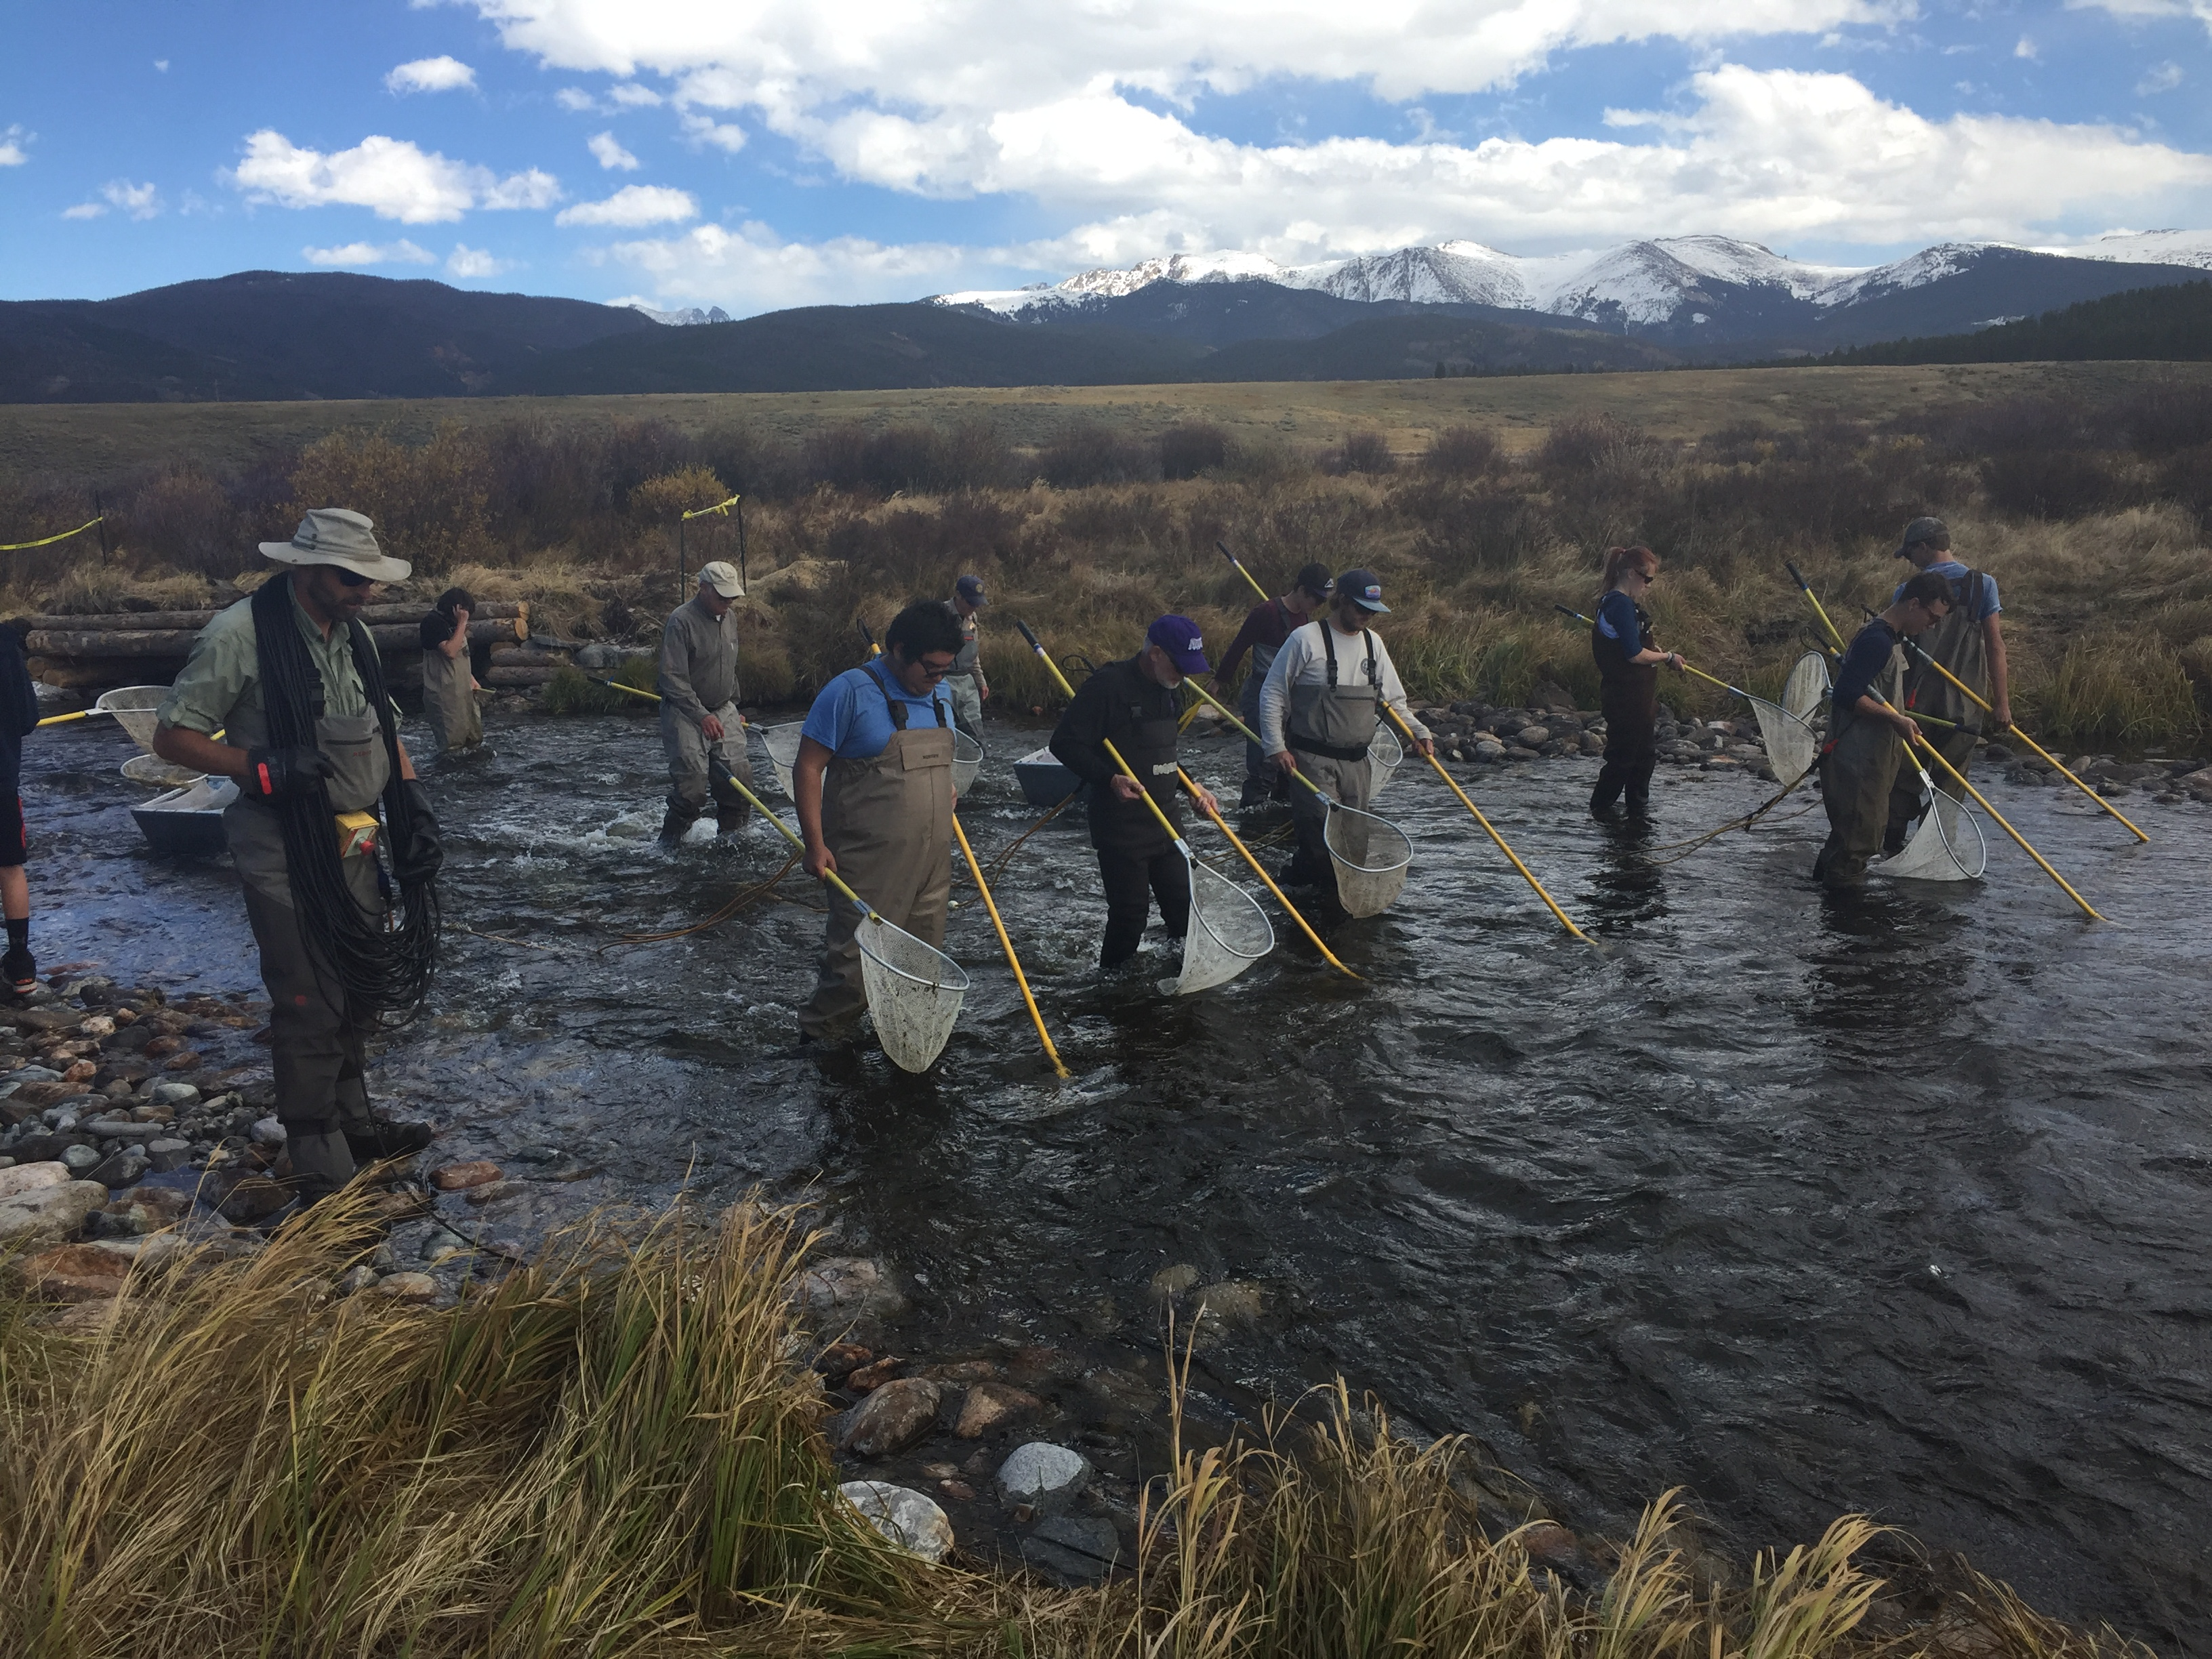 Colorado Parks and Wildlife conducted a survey of the trout population in the Fraser Flats section of the Fraser River on Oct. 5, 2017.